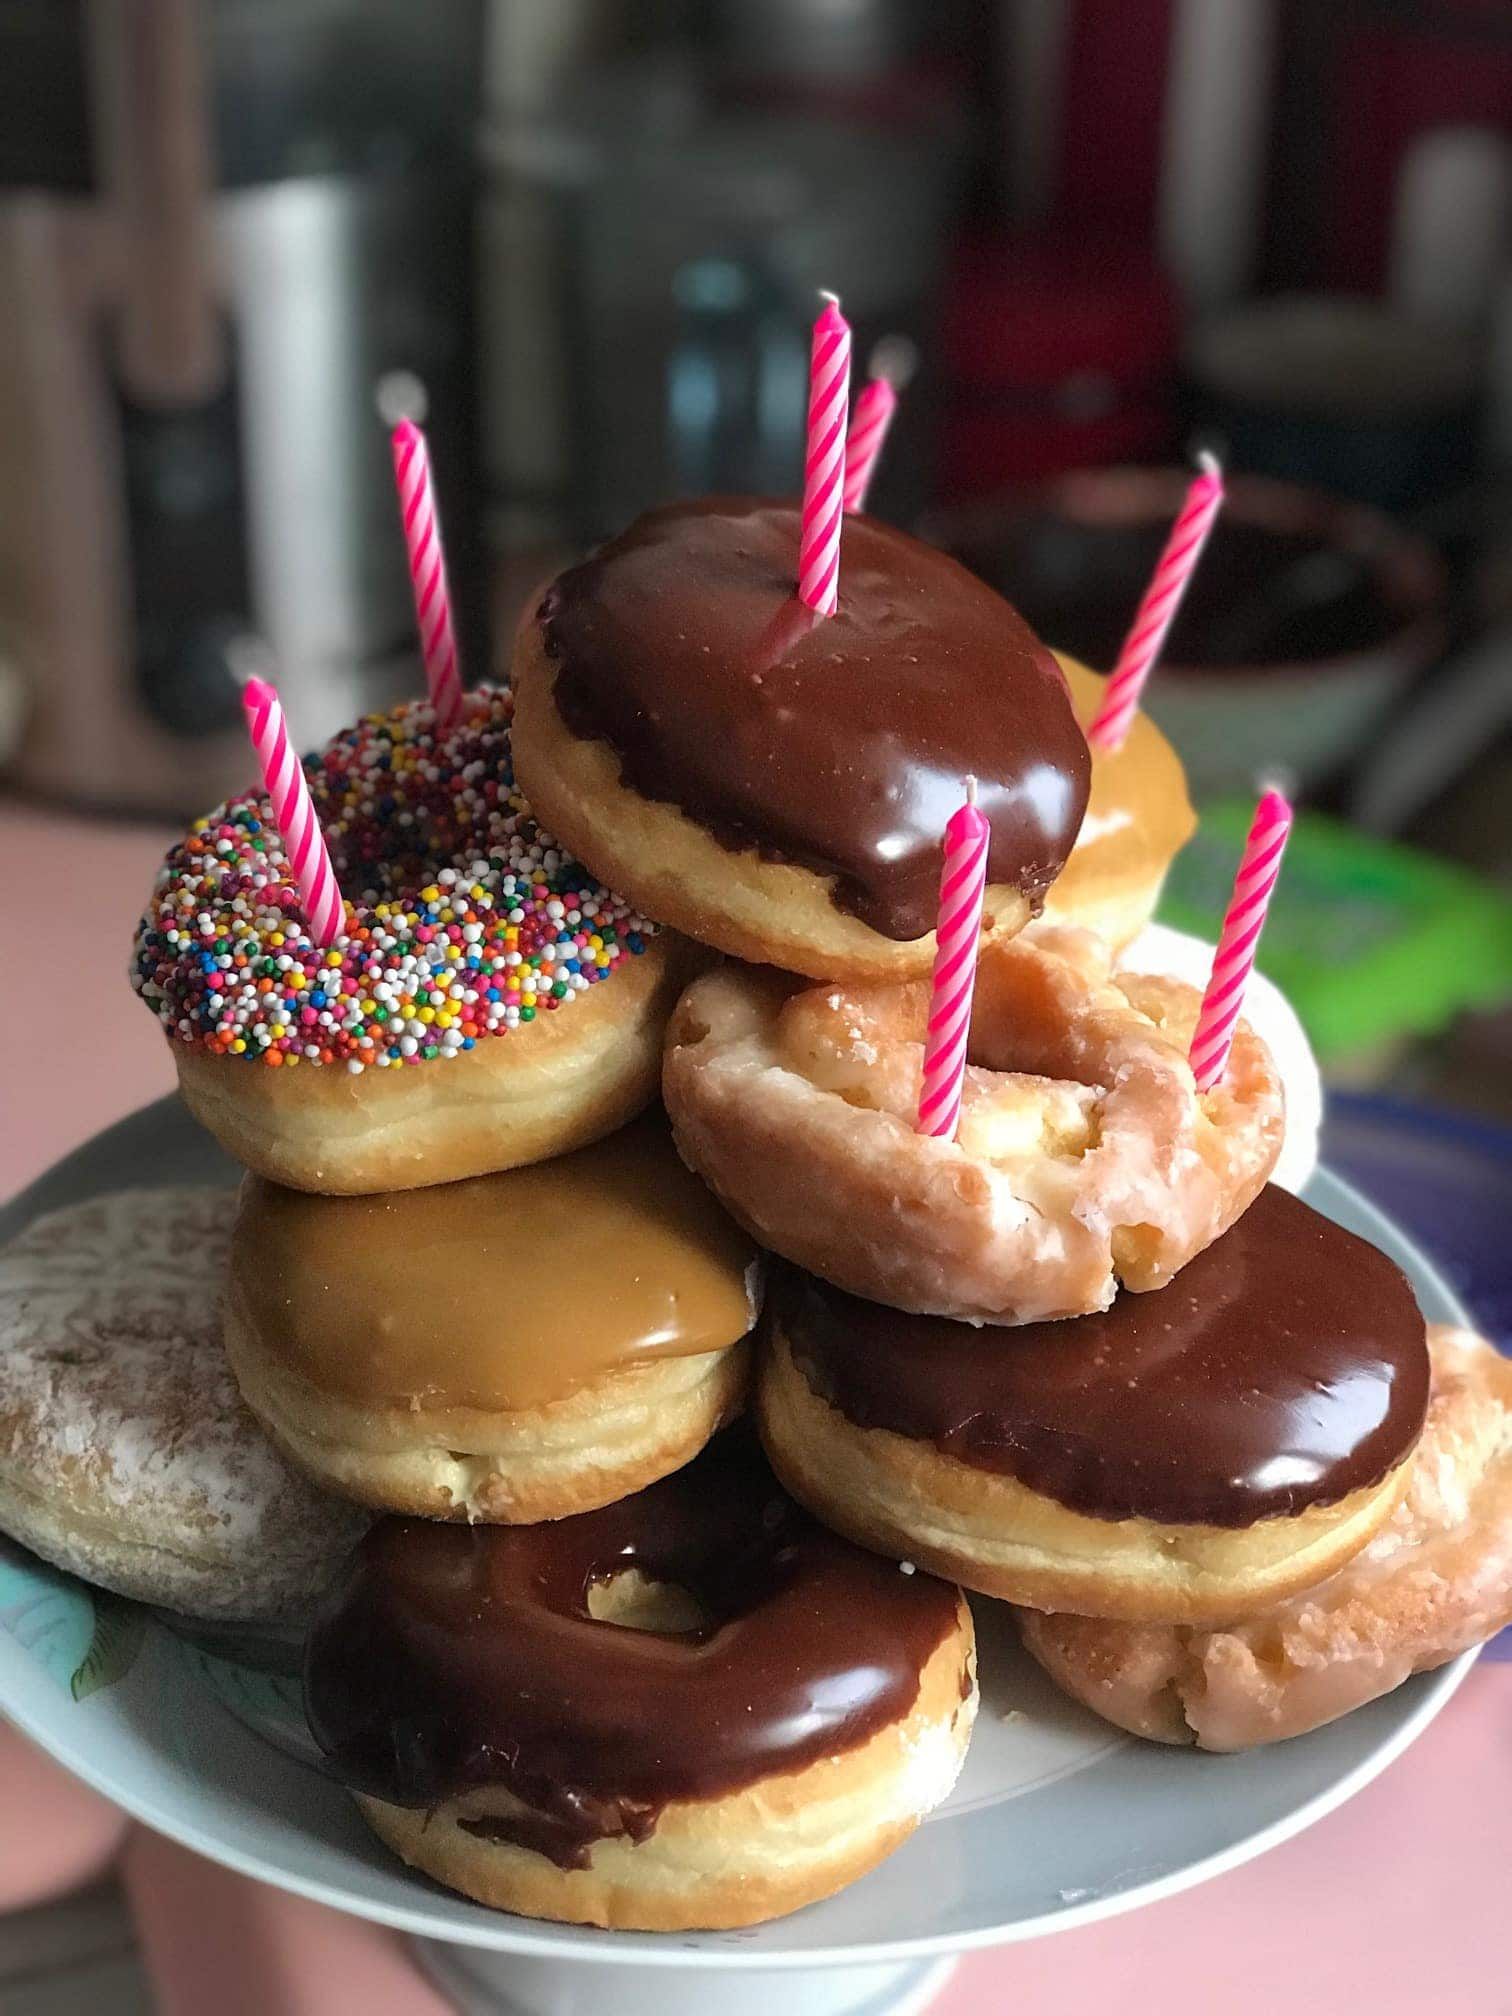 Donut pile with candles